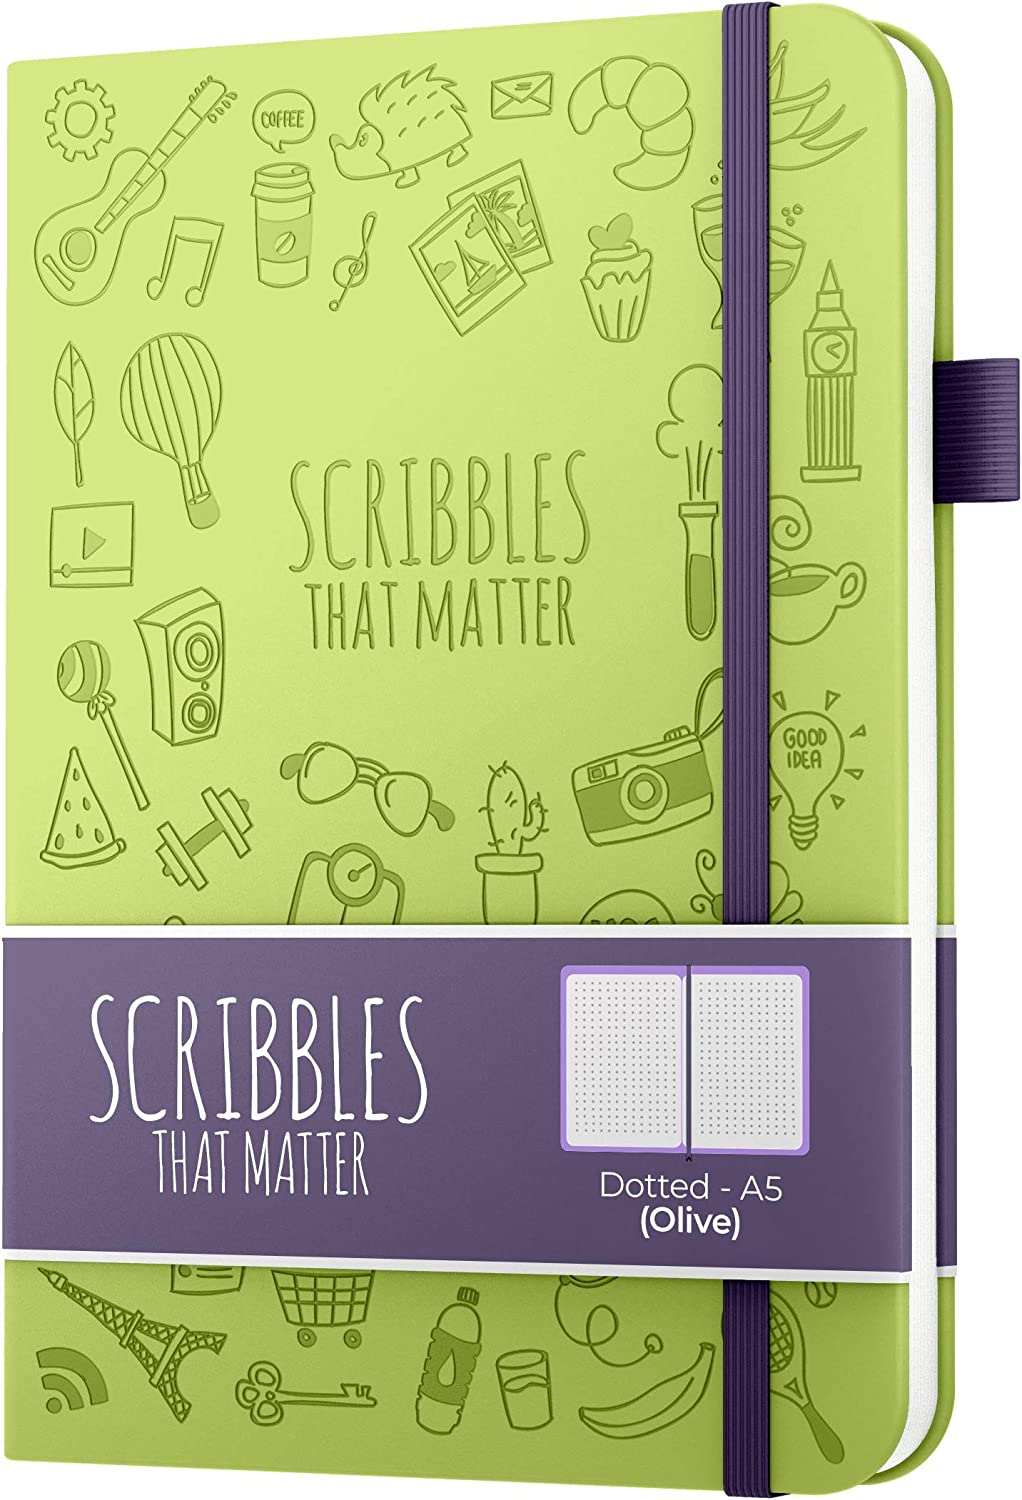 Fountain Pens Friendly Paper A5 Dotted Journal by Scribbles That Matter Iconic Version Bottle Green Hardcover Notebook Create Your Perfect Bullet Journal on Ultra-Thick 160gsm No Bleed Paper